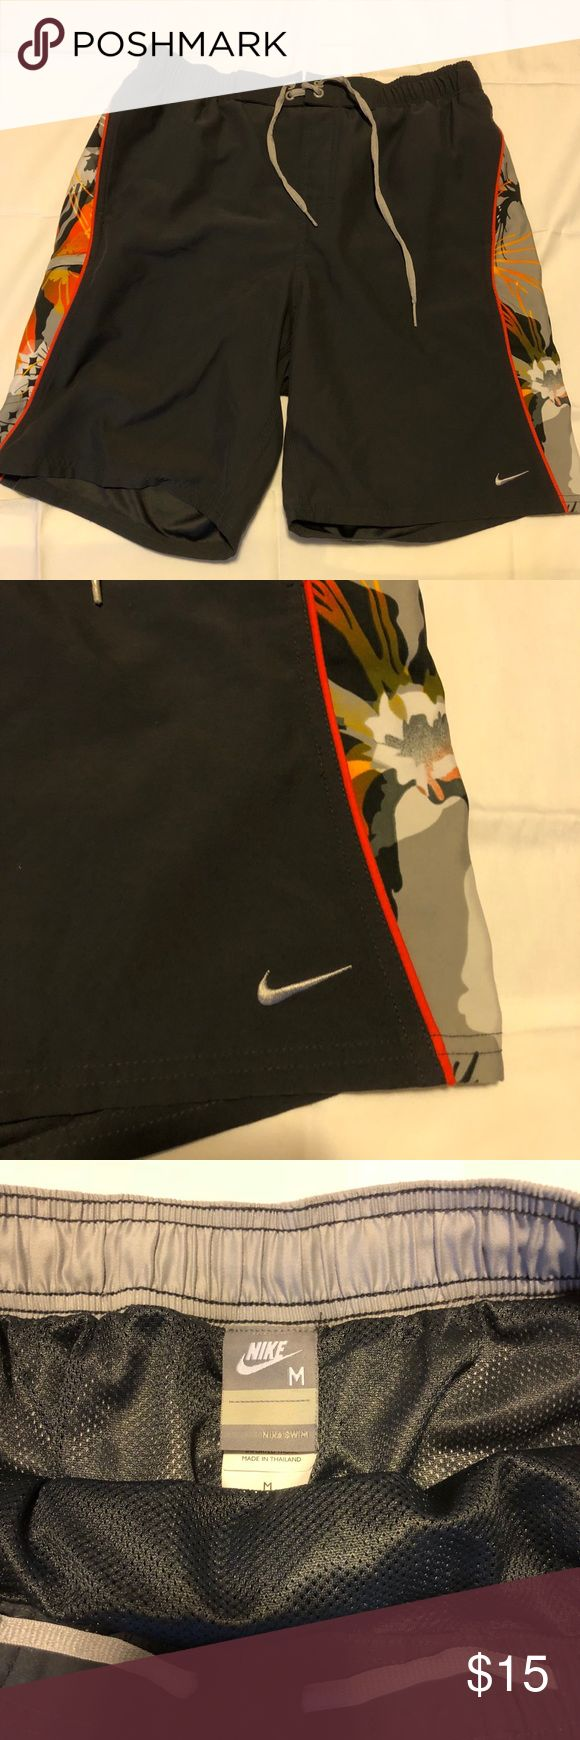 Nike swim shorts medium Nike swim shorts size medium Nike Shorts